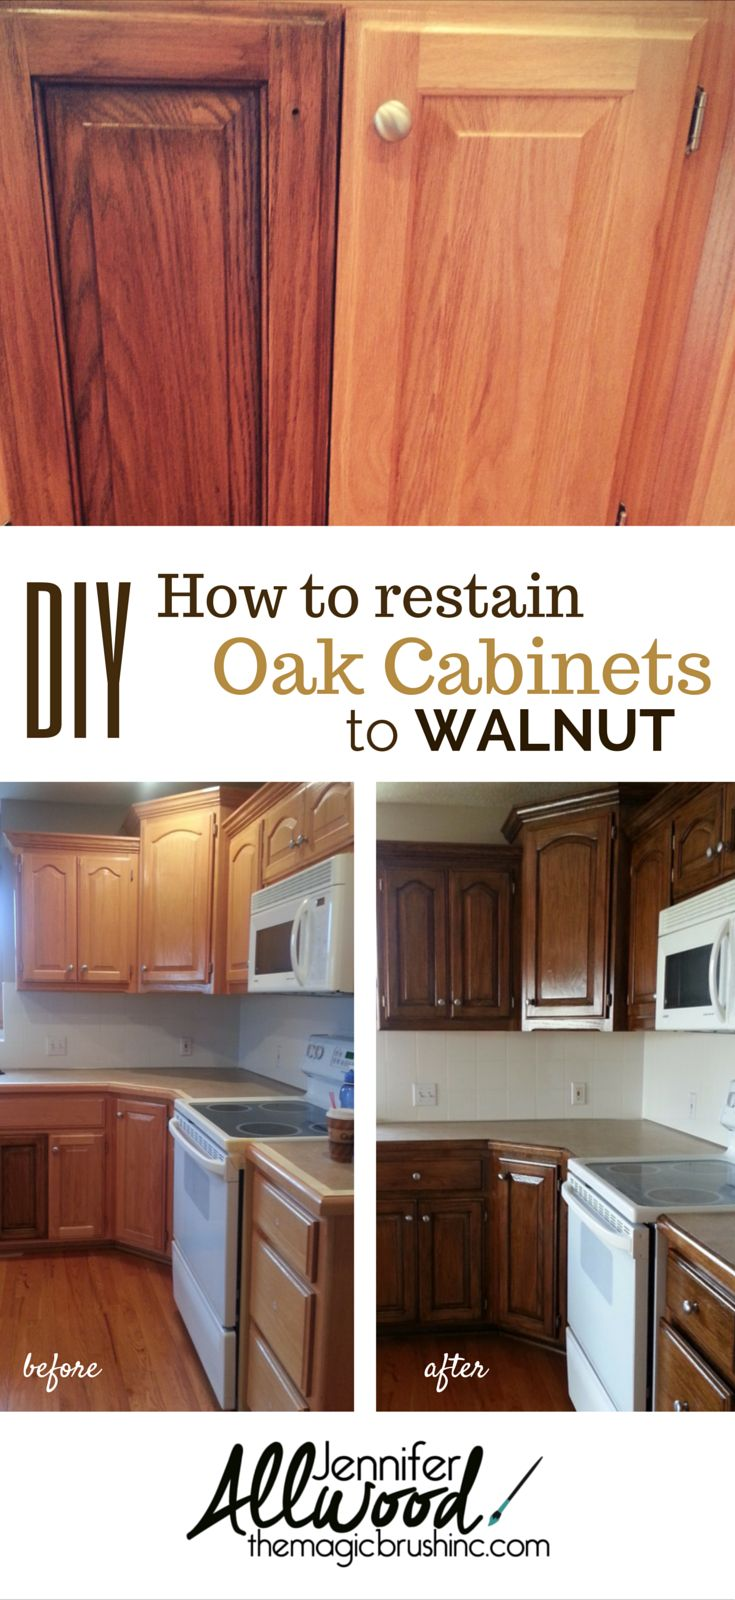 How to change your tired, oak kitchen cabinets to a dark Walnut stain. theMagicBrushinc.com's video has step-by-step instructions, products and trade secrets.